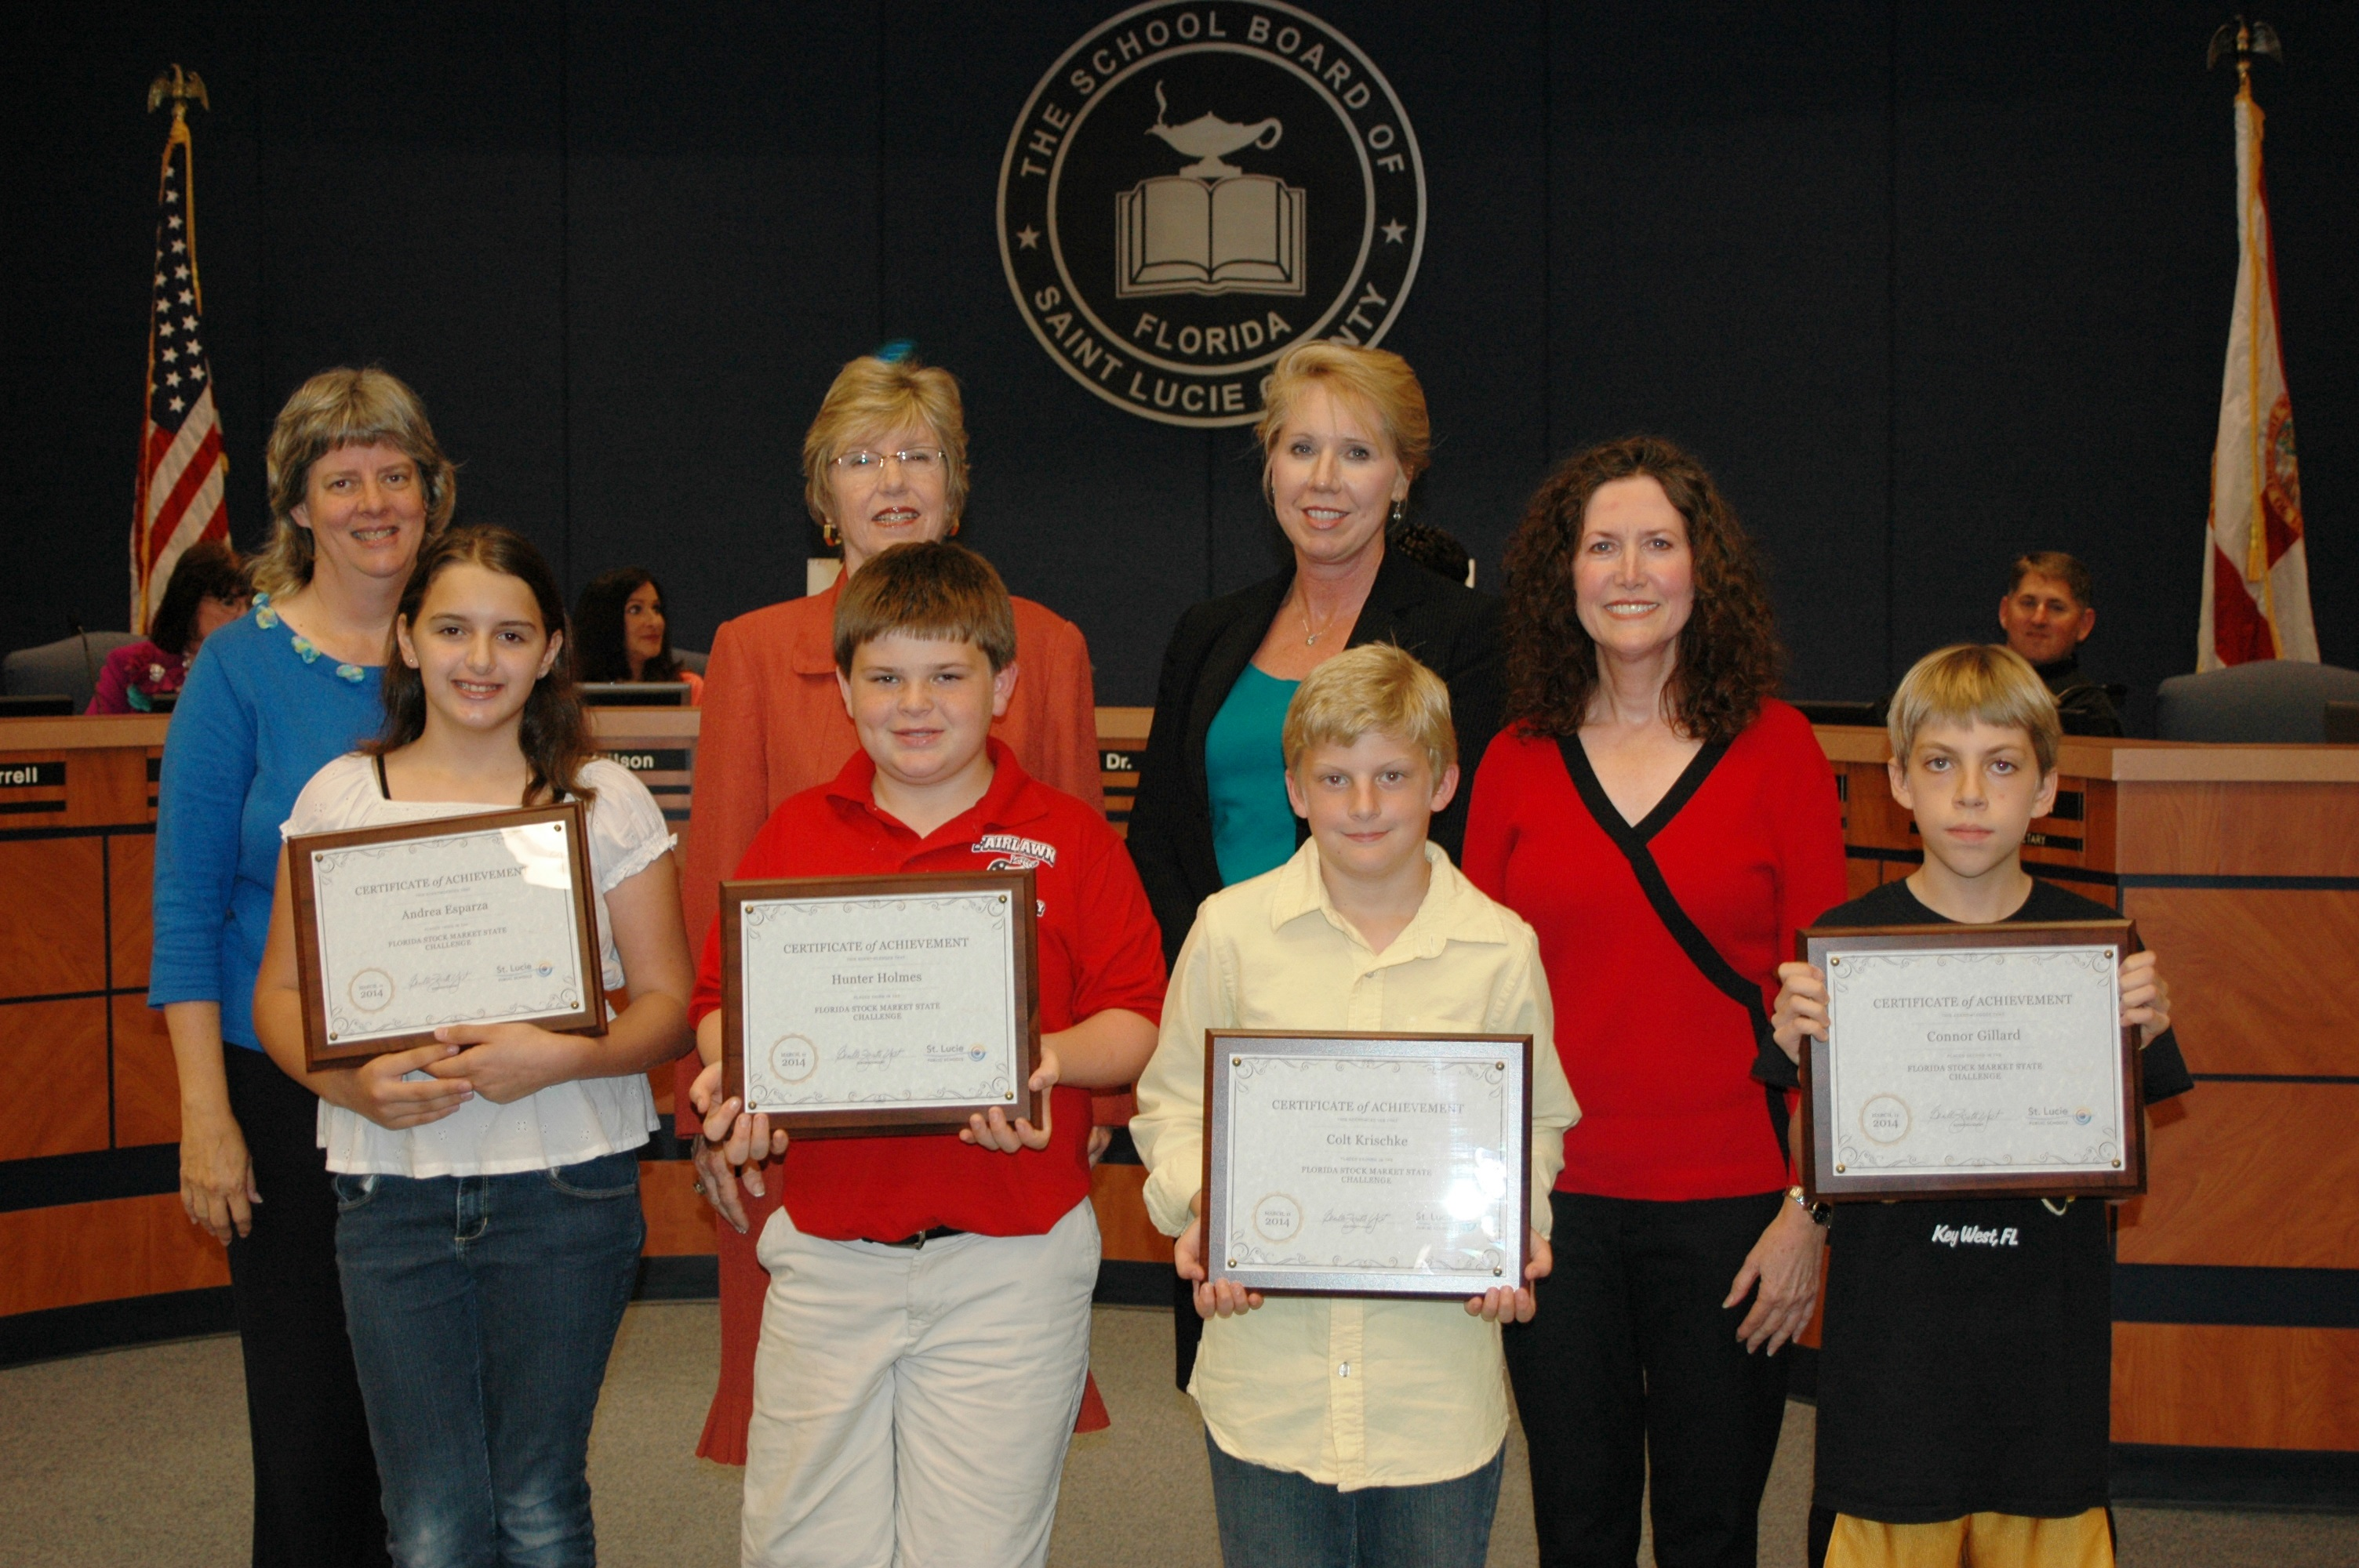 Fairlawn Elementary students recognized for state contest win